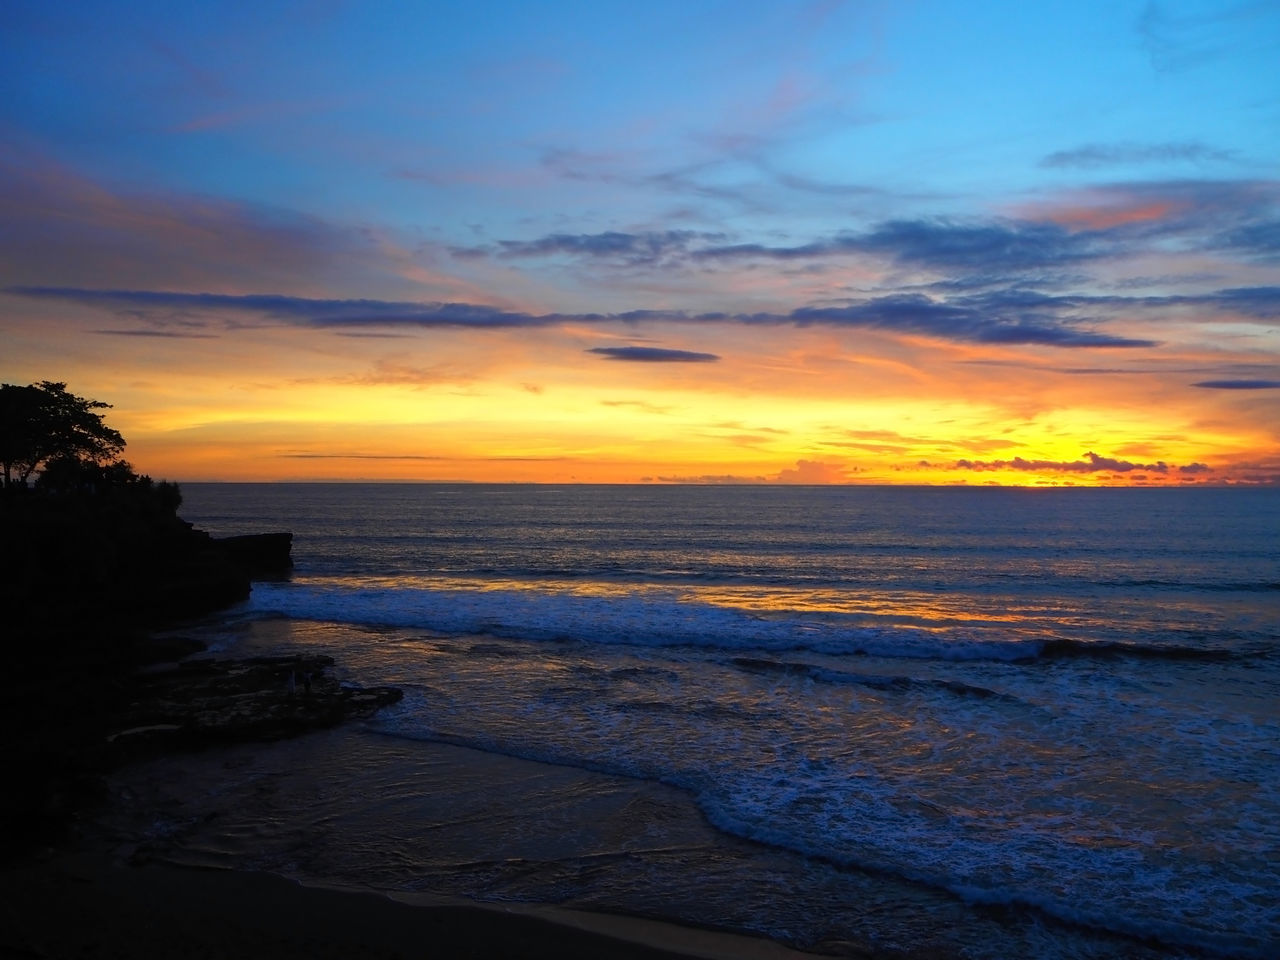 💙🌅 Sunset On The Beach 🌅💙 Life Is A Beach Travel Tanah Lot Wave Sunset Bali Bali, Indonesia Nature Landscapes Beauty In Nature Beach Cloud - Sky Dramatic Sky Exceptional Photographs Idyllic No People Outdoors Miles Away Scenics Sea Water Reflections Tadaa Community Tranquility Capture The Moment